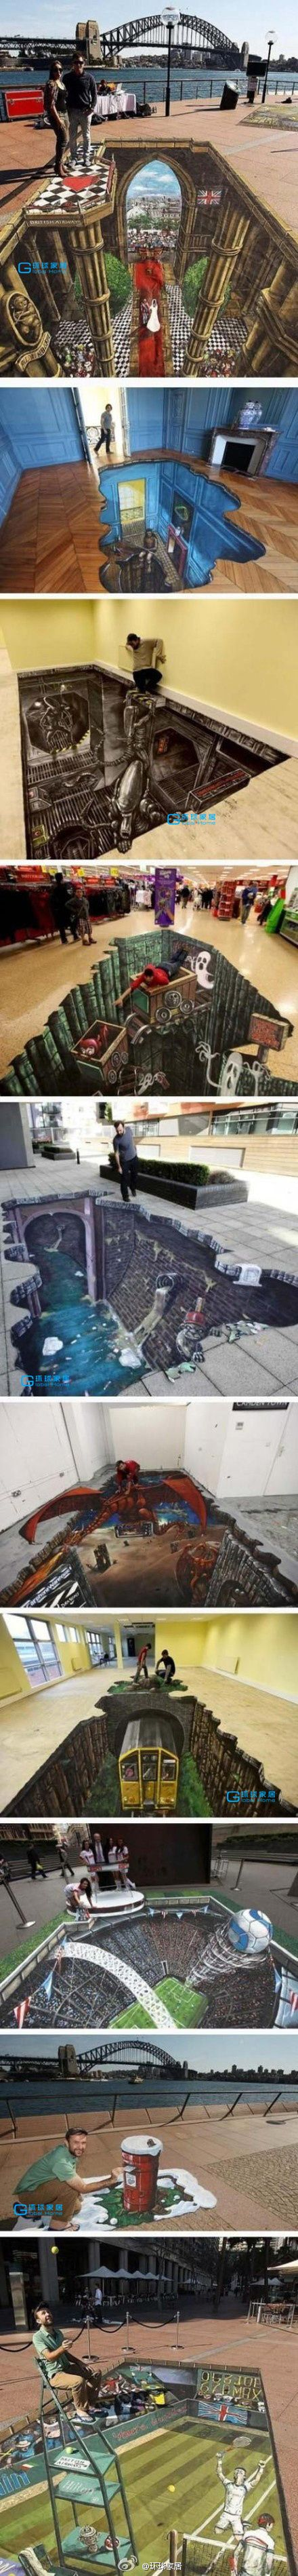 Amazing 3D Pavement Art by Joe Hill